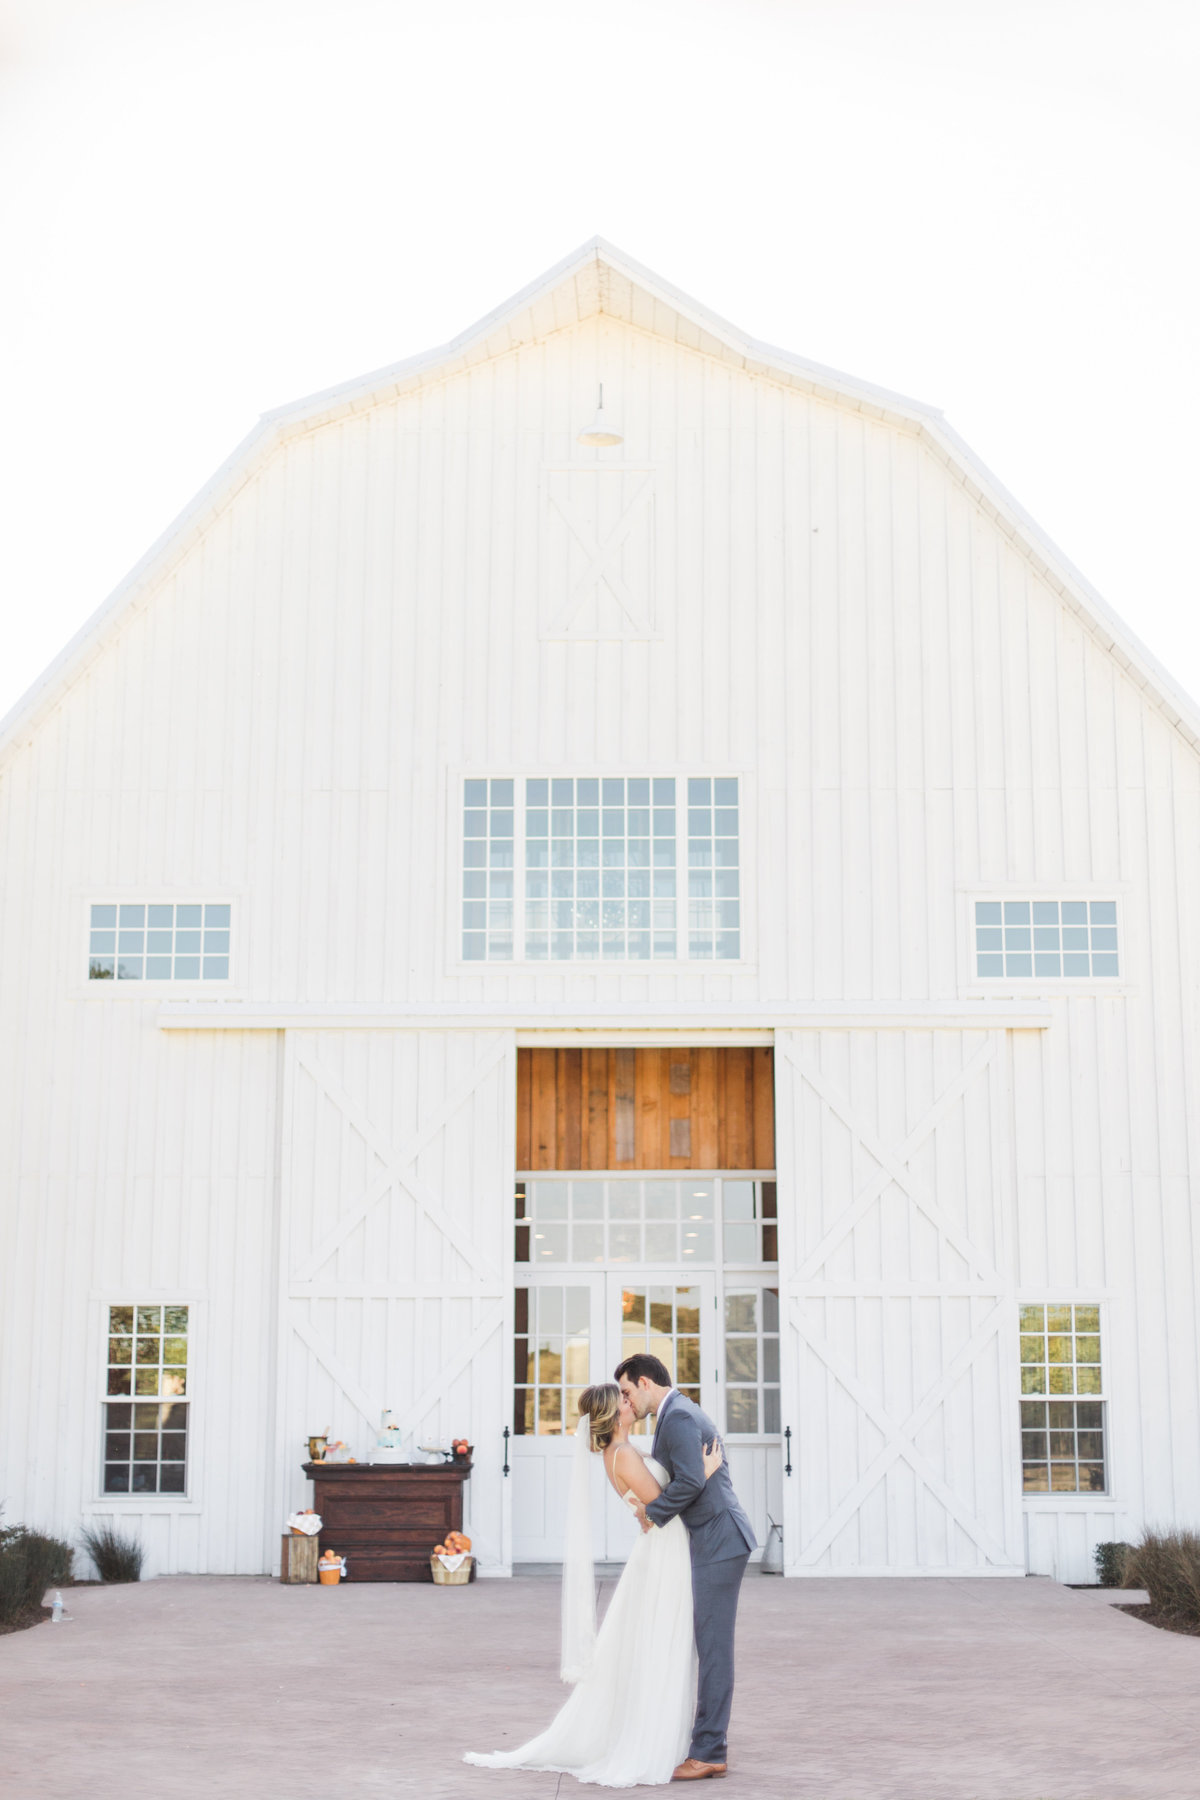 The White Sparrow Wedding Venue Wedding Photos in Quinlan Texas by Dallas Wedding Photographer 7